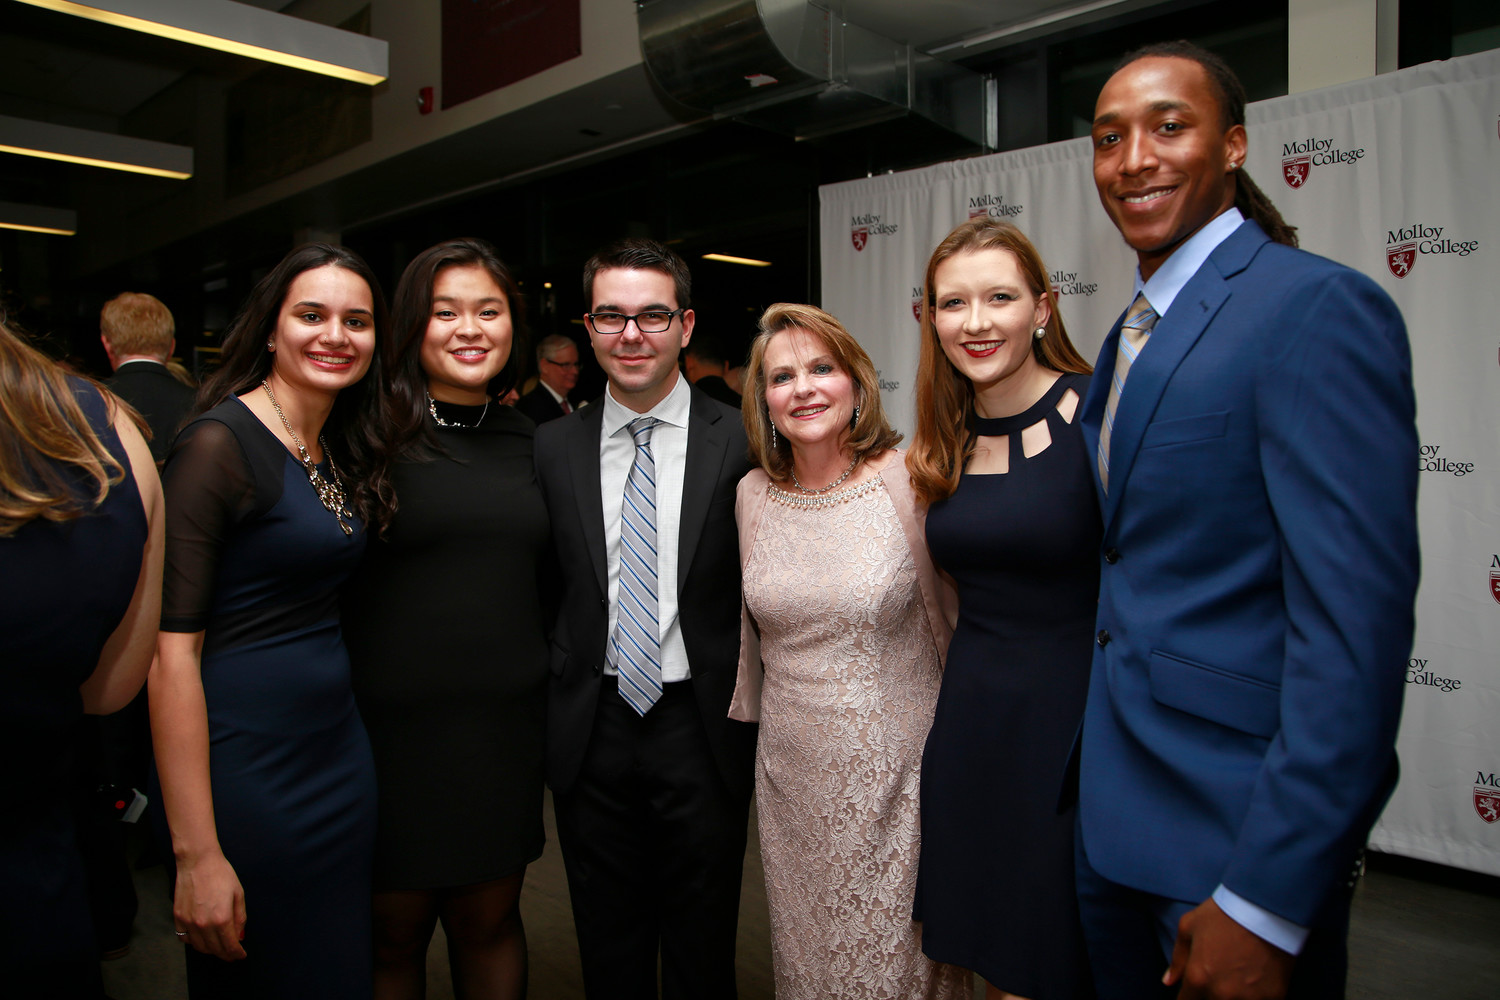 Honoree Elizabeth Boylan with Molloy students Afsha Malik, left, Helen Pham, Lucijan Jovic, Anne Collins, president of the student body, and Curtis Jenkins.